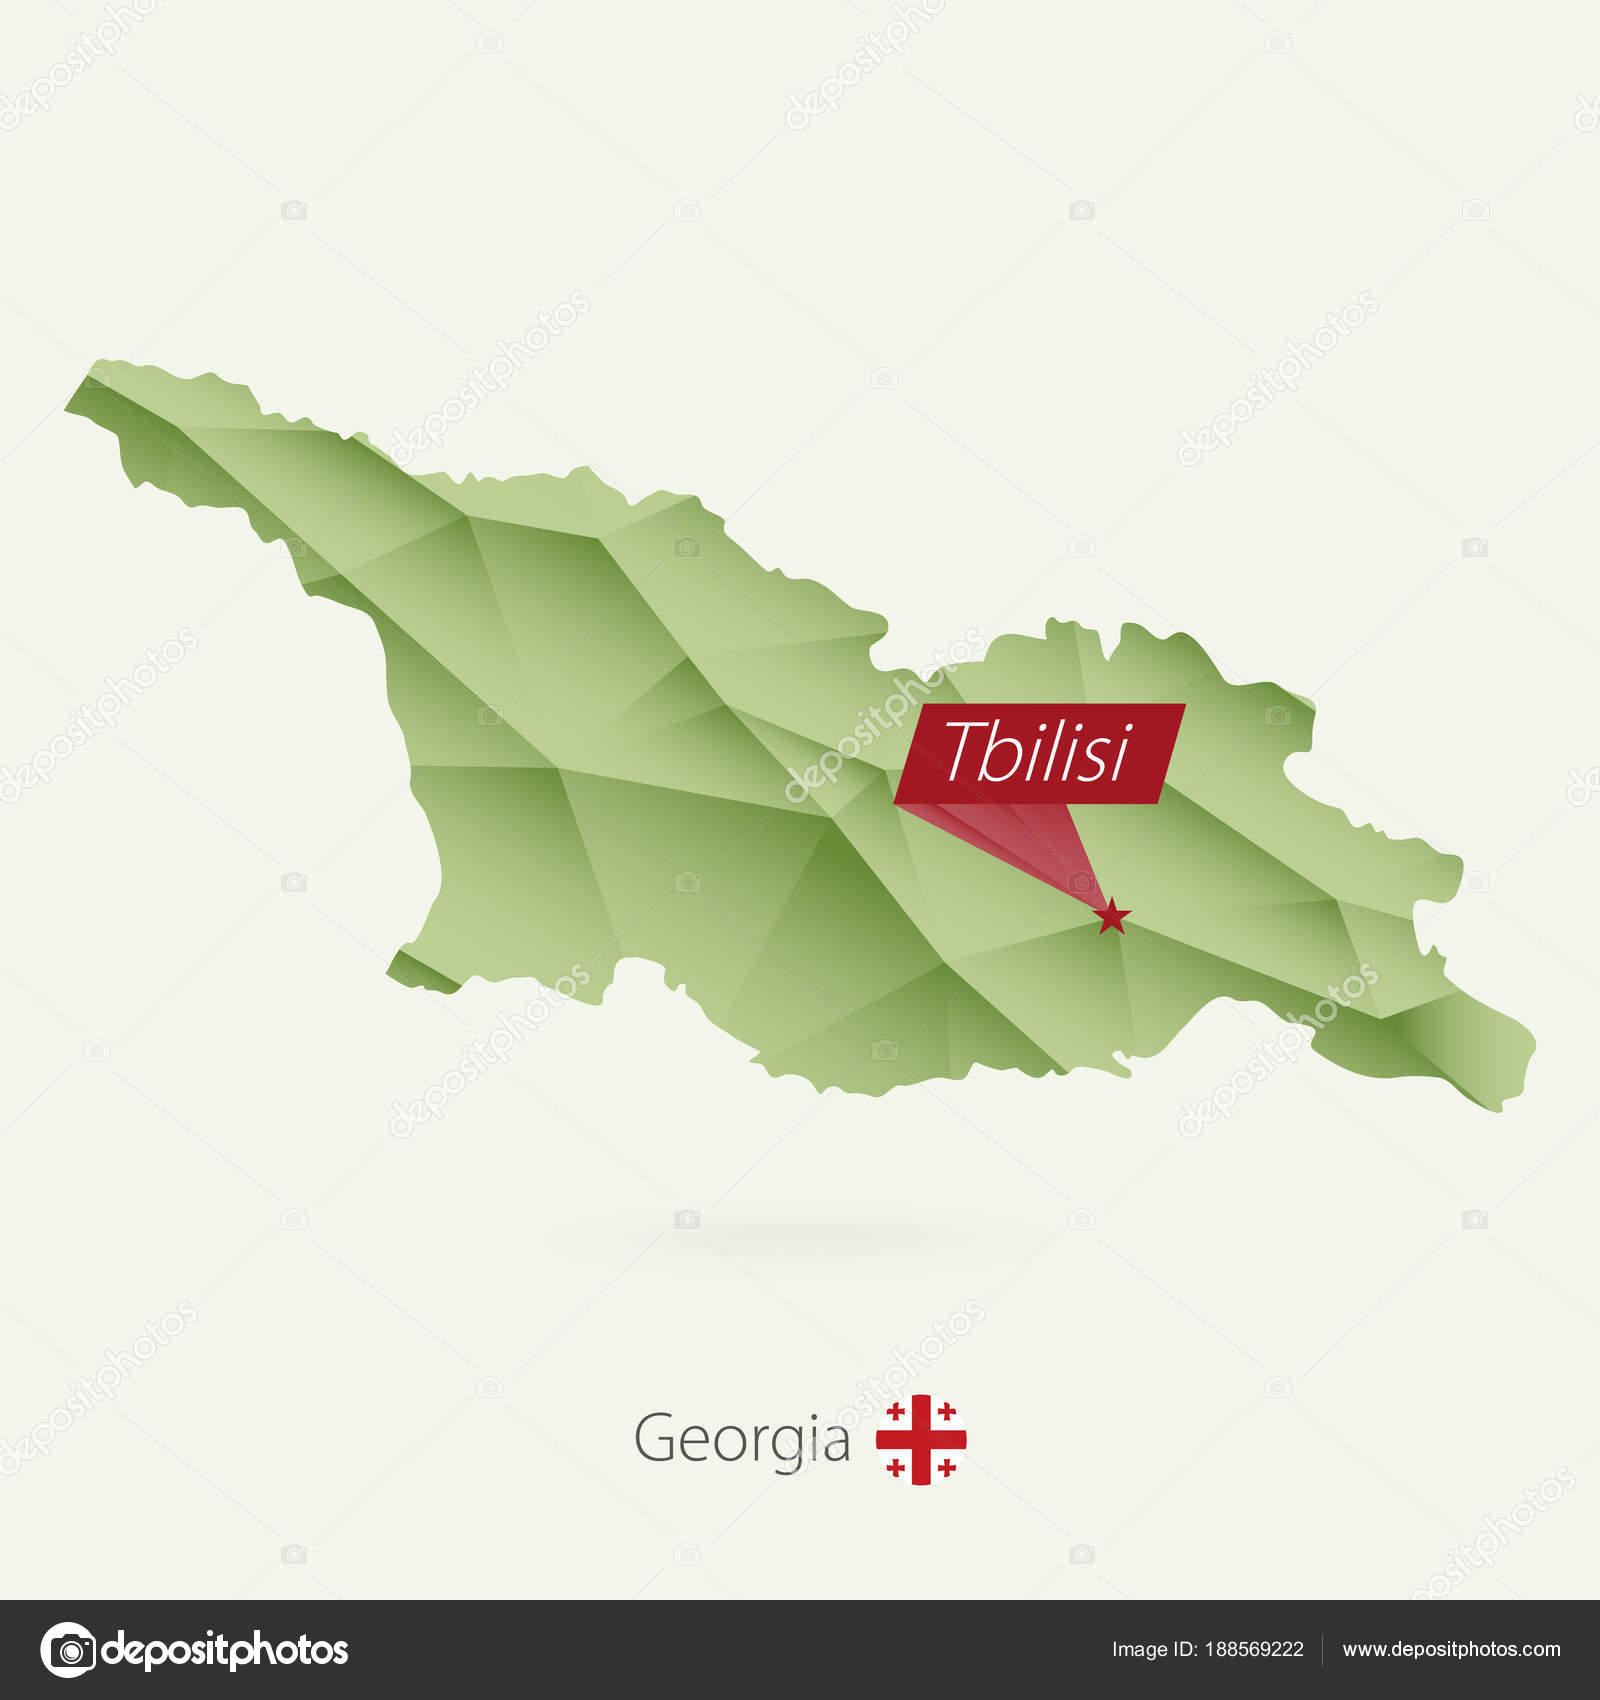 Map Of Georgia With Capital.Green Gradient Low Poly Map Of Georgia With Capital Tbilisi Stock